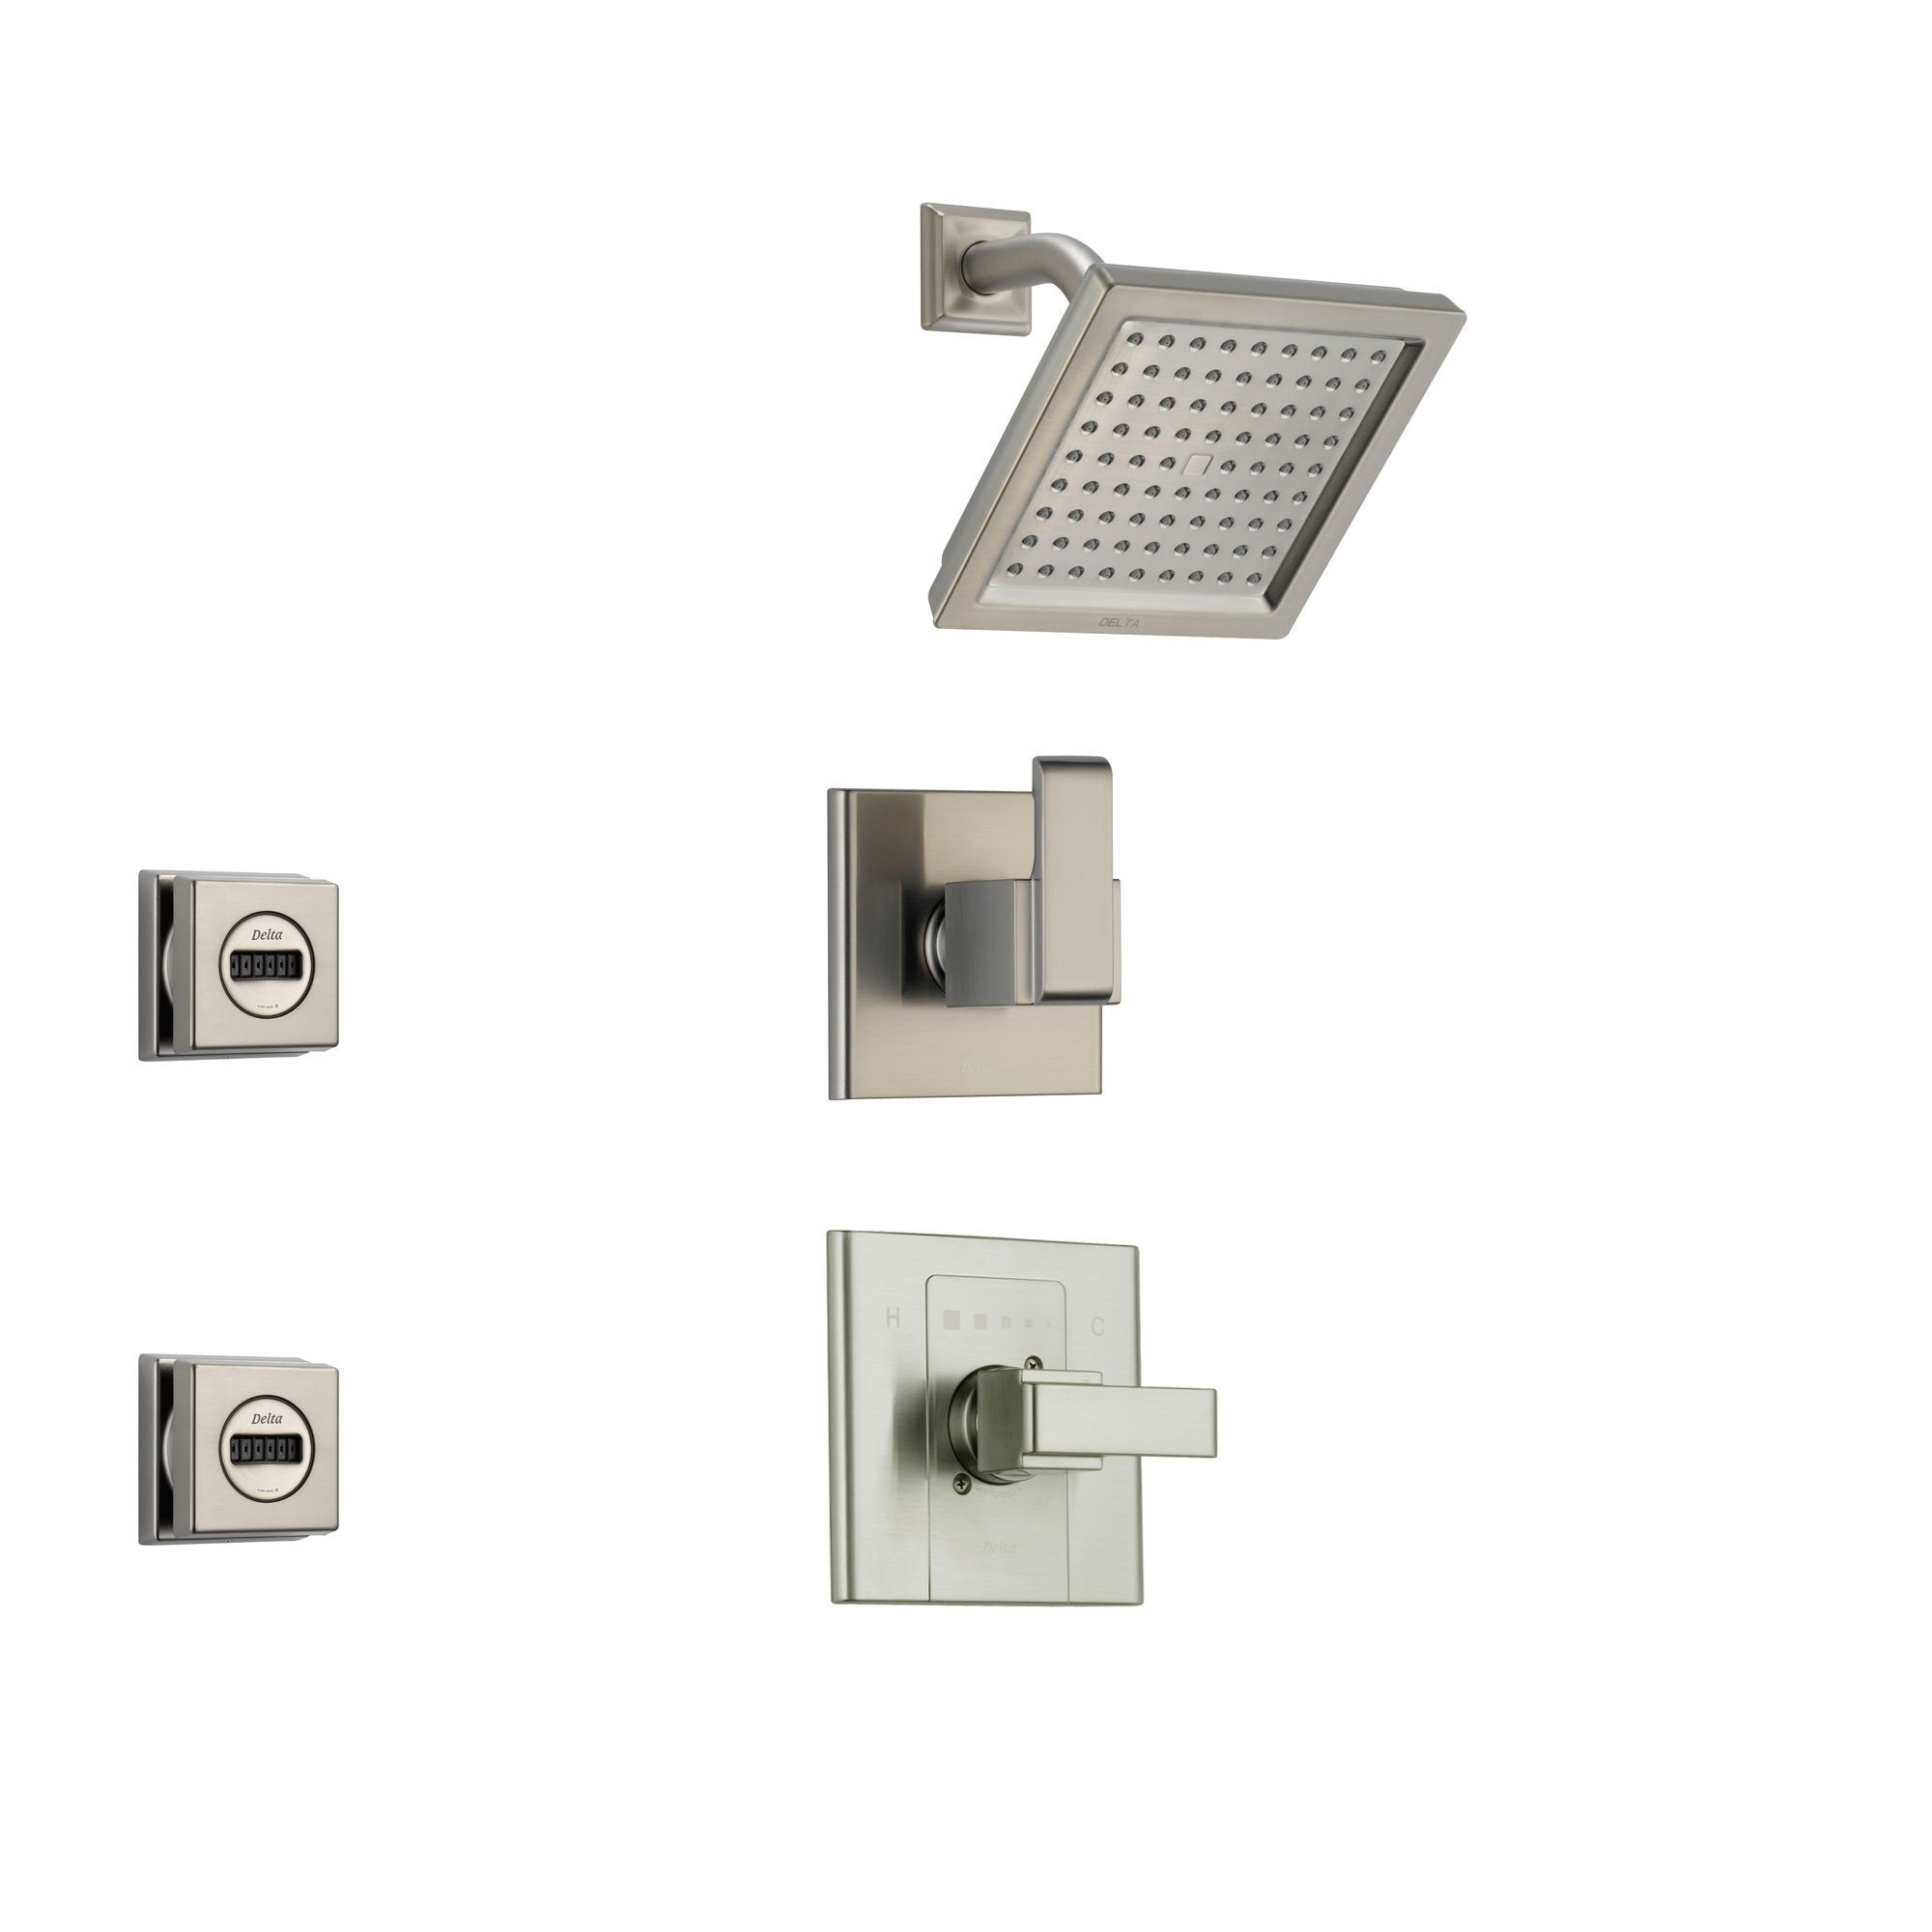 Delta Arzo Stainless Steel Shower System with Normal Shower Handle, 3-setting Diverter, Modern Square Shower Head and 2 Body Sprays SS148685SS